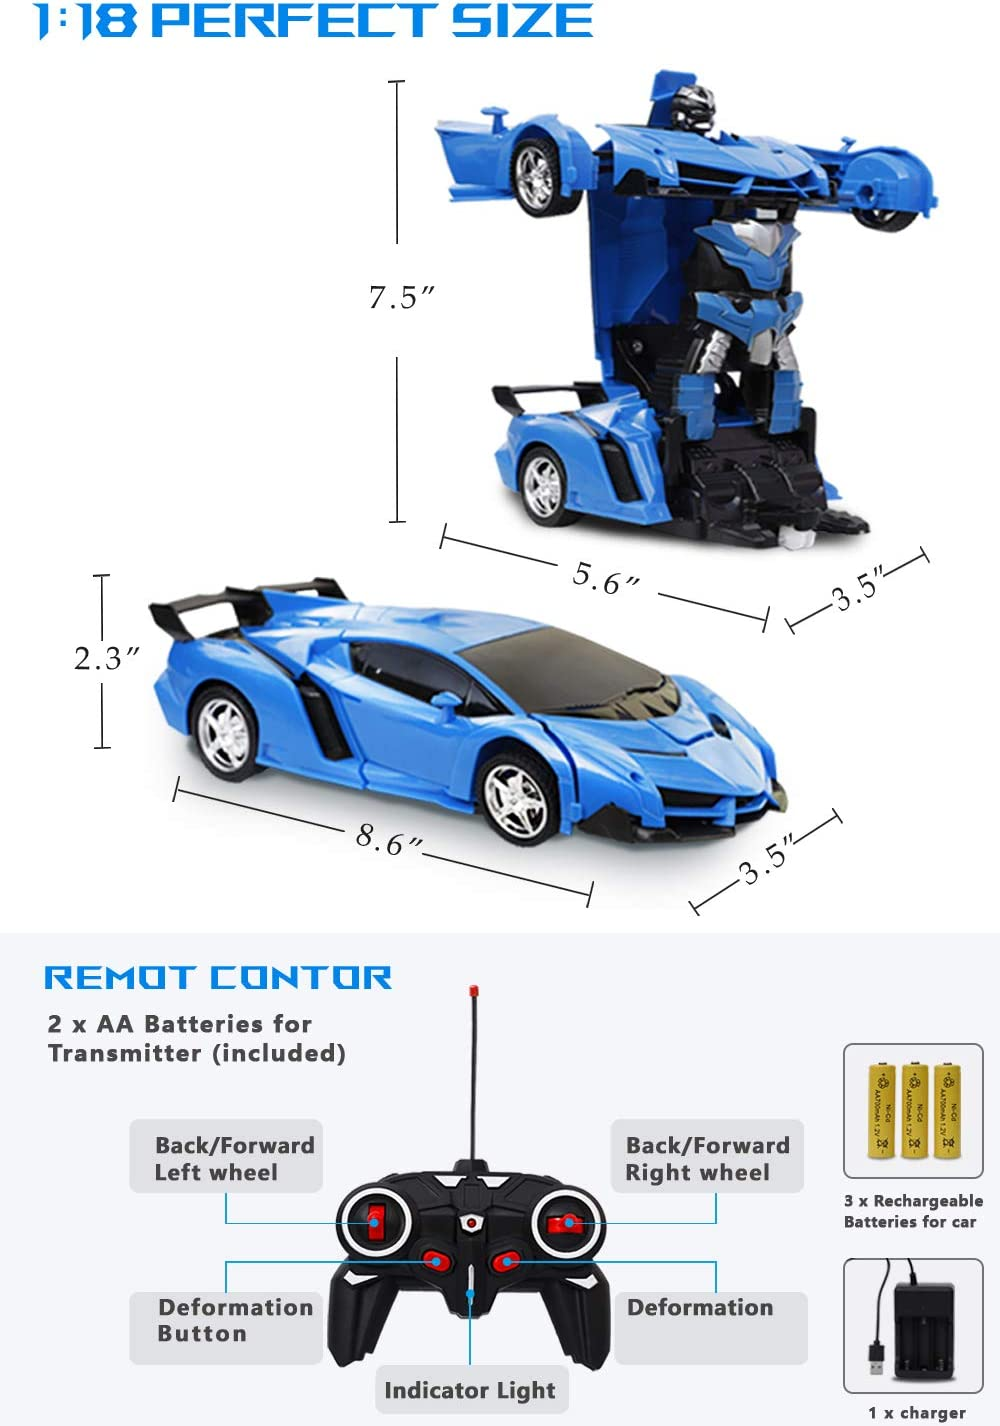 One-Button Deformation and 360/°Rotating Drifting Blue ameow Remote Control Car Transform/Robot Gesture Sensing Toys,/RC Cars Robot for Kids Best Gift for Boys and Girls 1:18 -